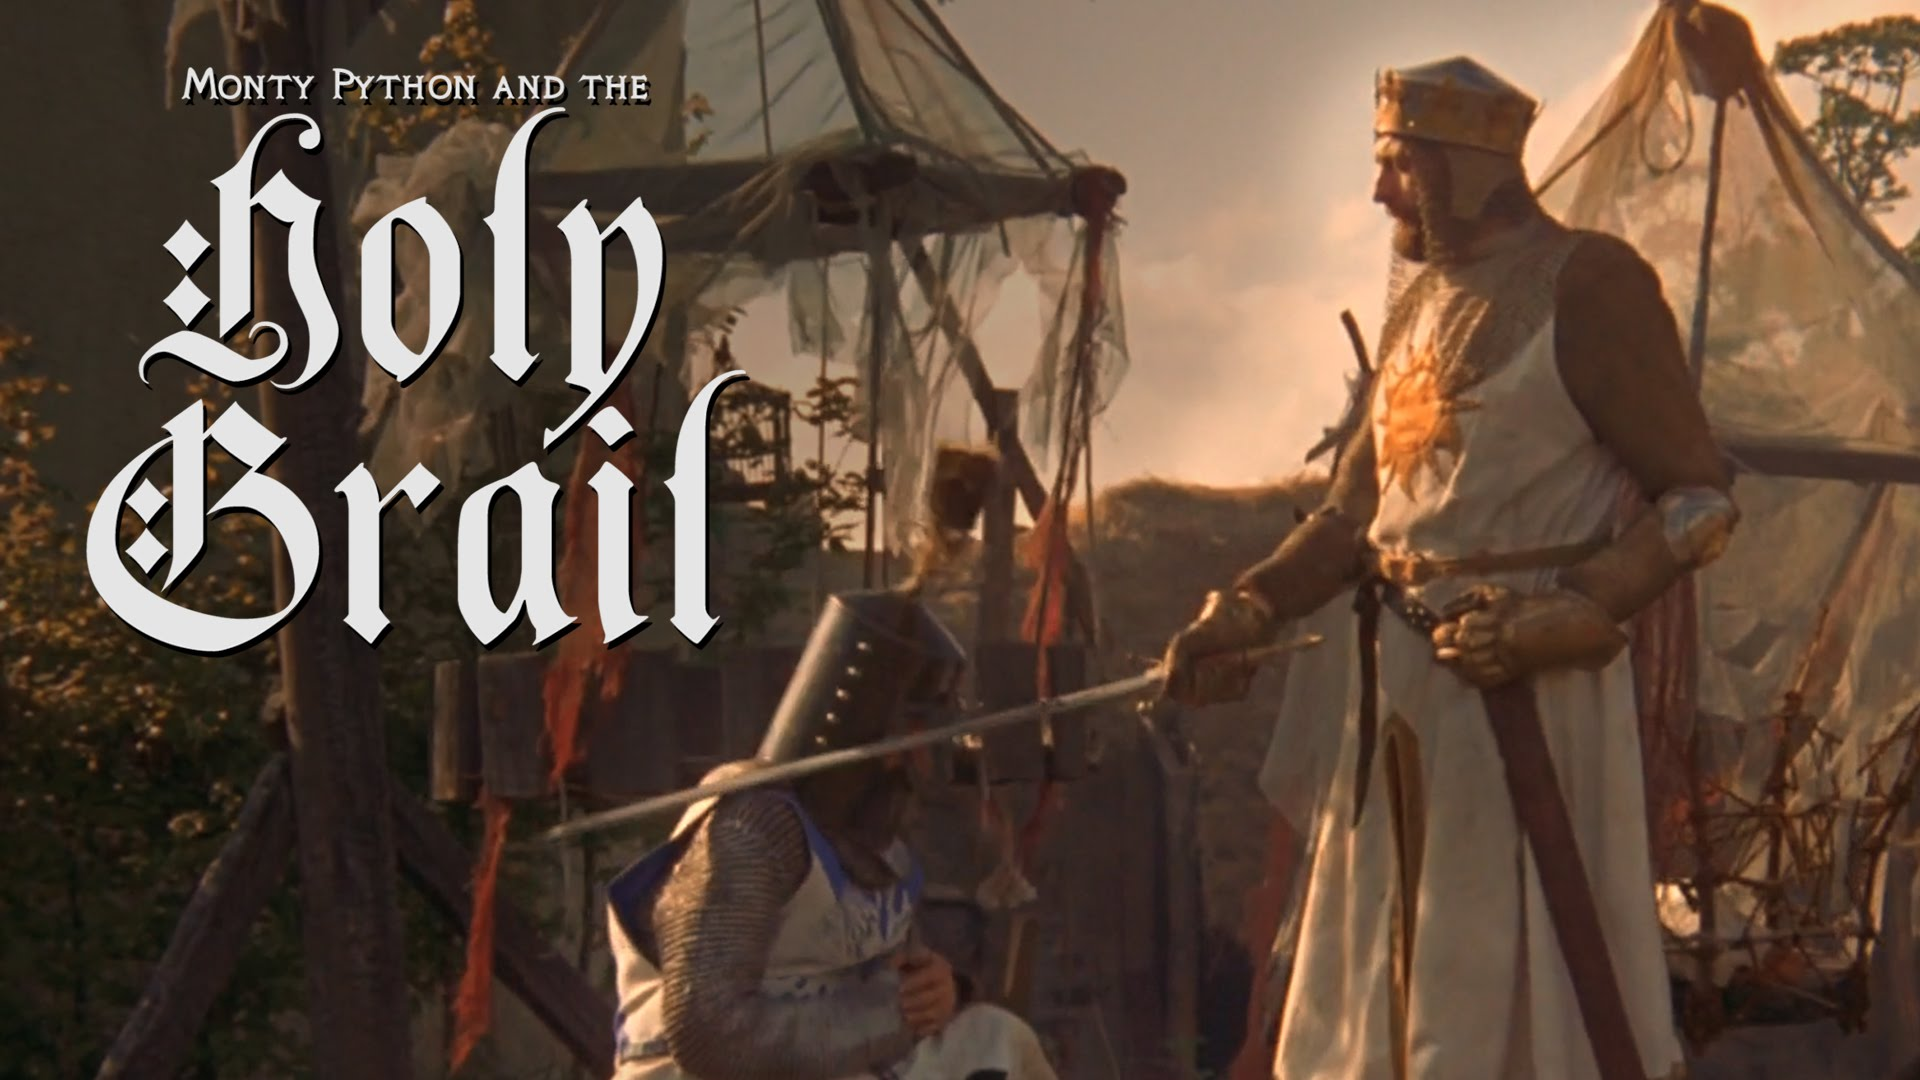 monty python and the holy grail reimagined as a crazy